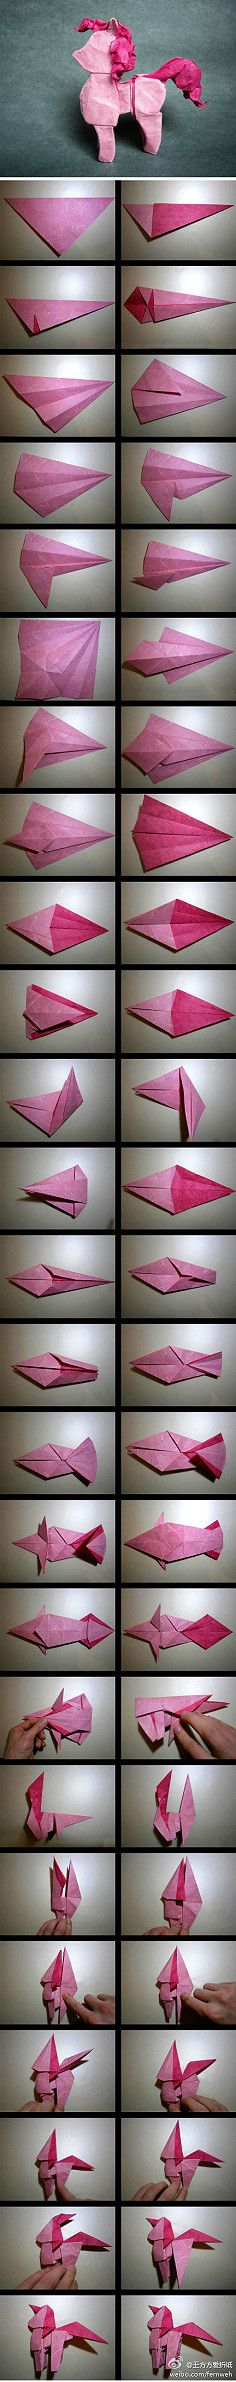 Pinkie Pie Origami Folding Process by mitanei on DeviantArt Origami And Kirigami, Origami Love, Origami Folding, Paper Crafts Origami, Diy Paper, Oragami, Tissue Paper, Diagrammes Origami, Crafts To Do